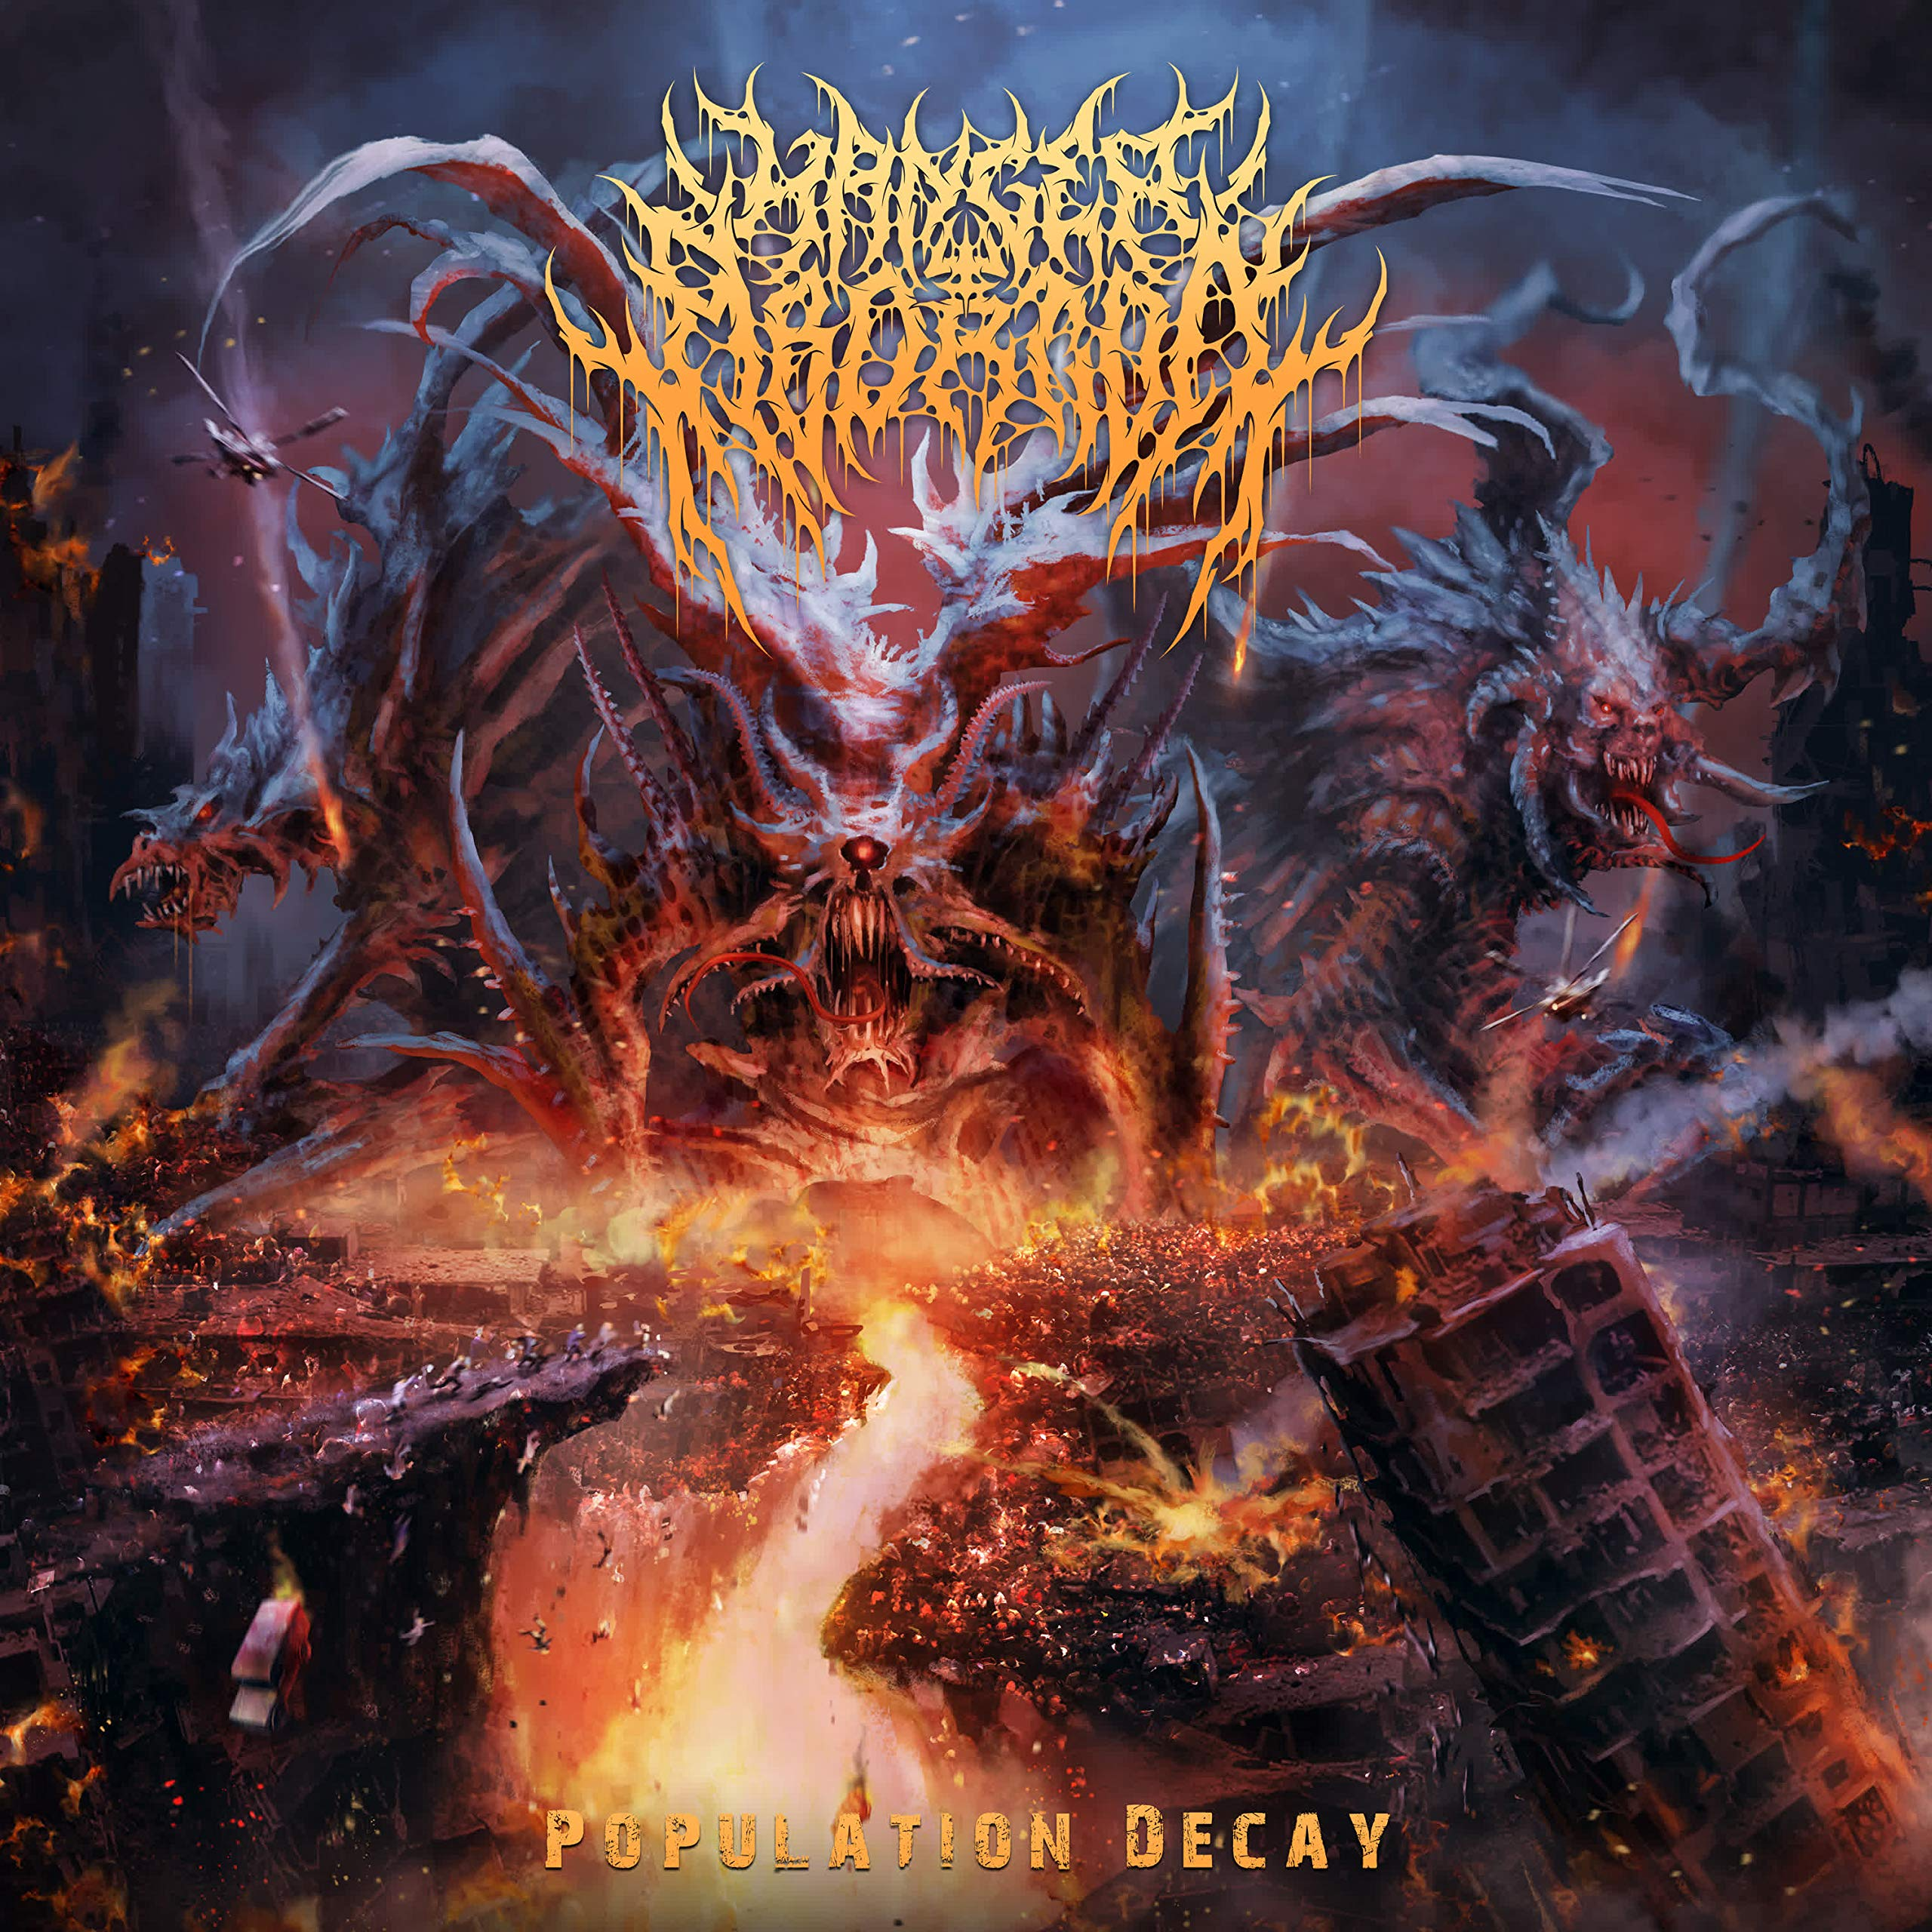 Hanger Abortion - Population Decay (2020) [FLAC] Download